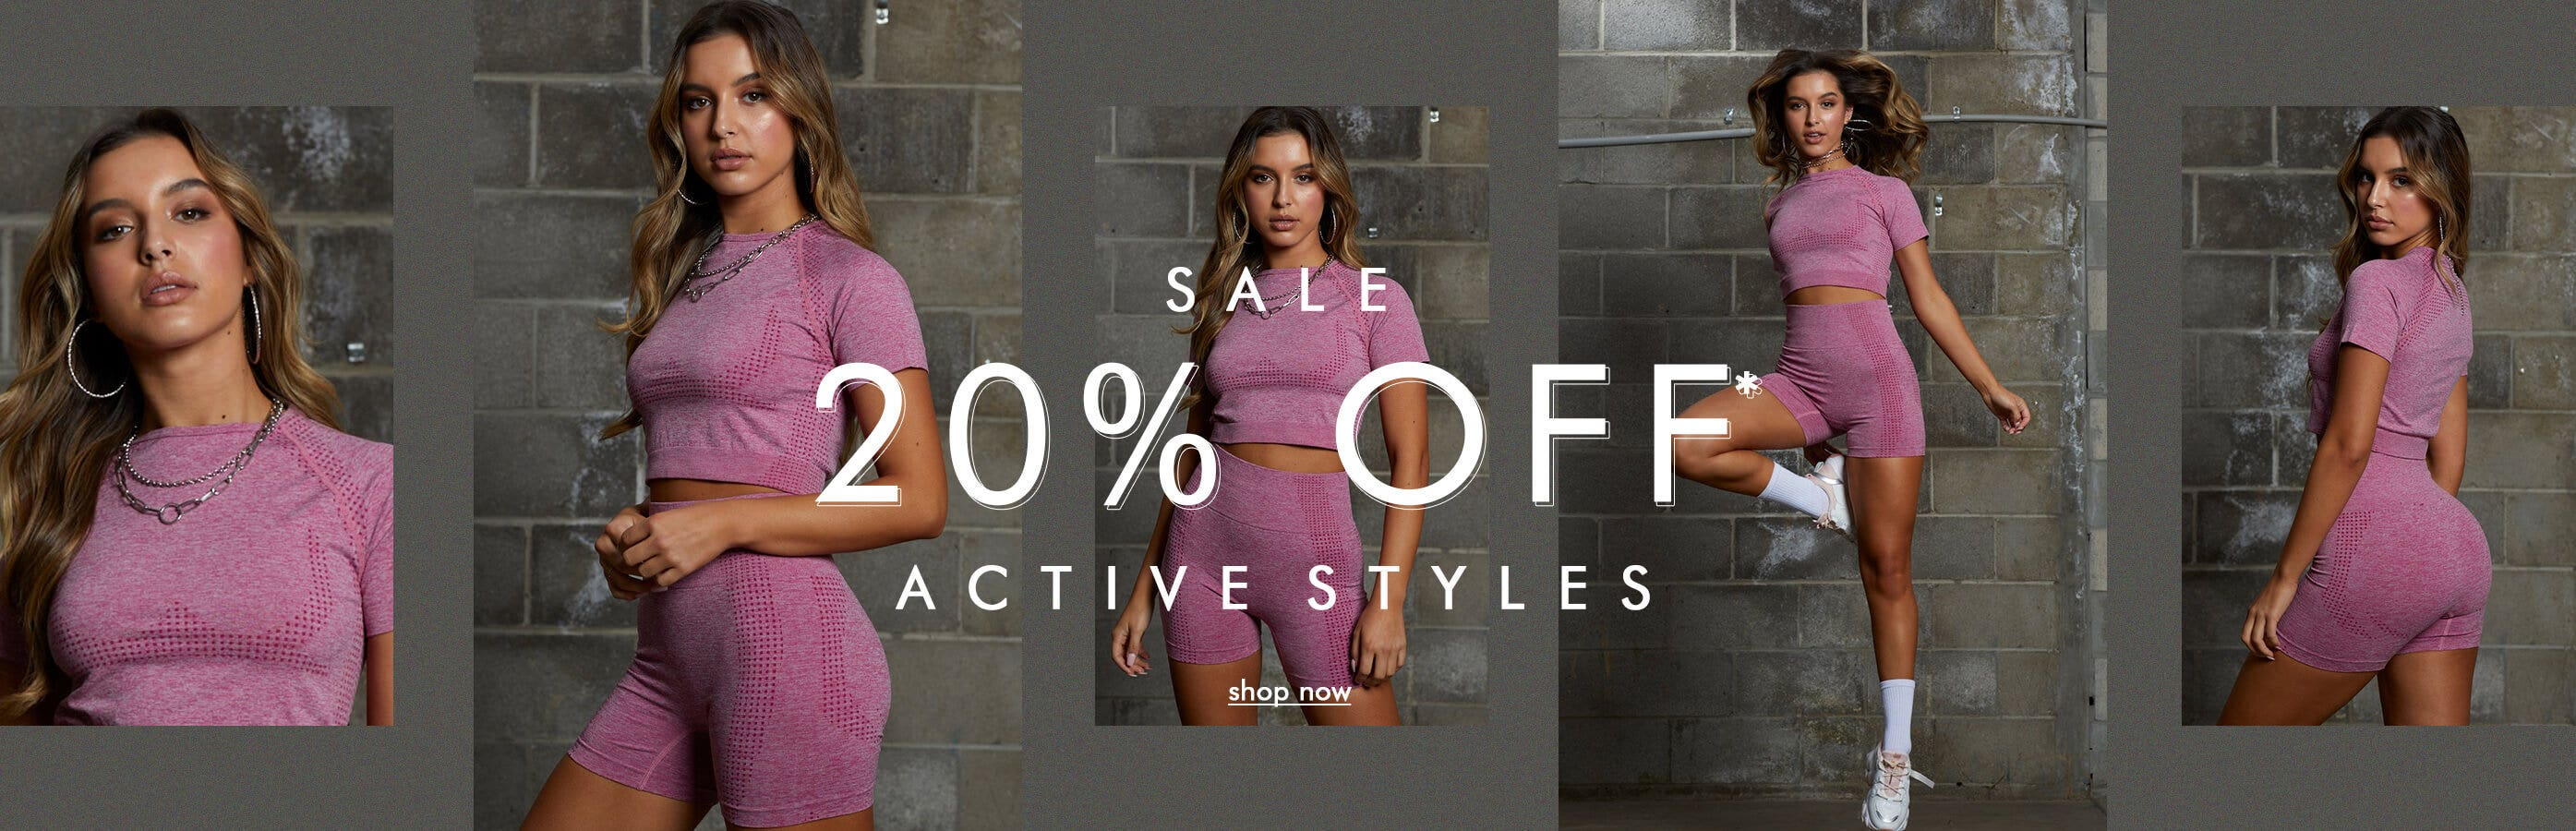 Ally Fashion Coupons & Promo Codes